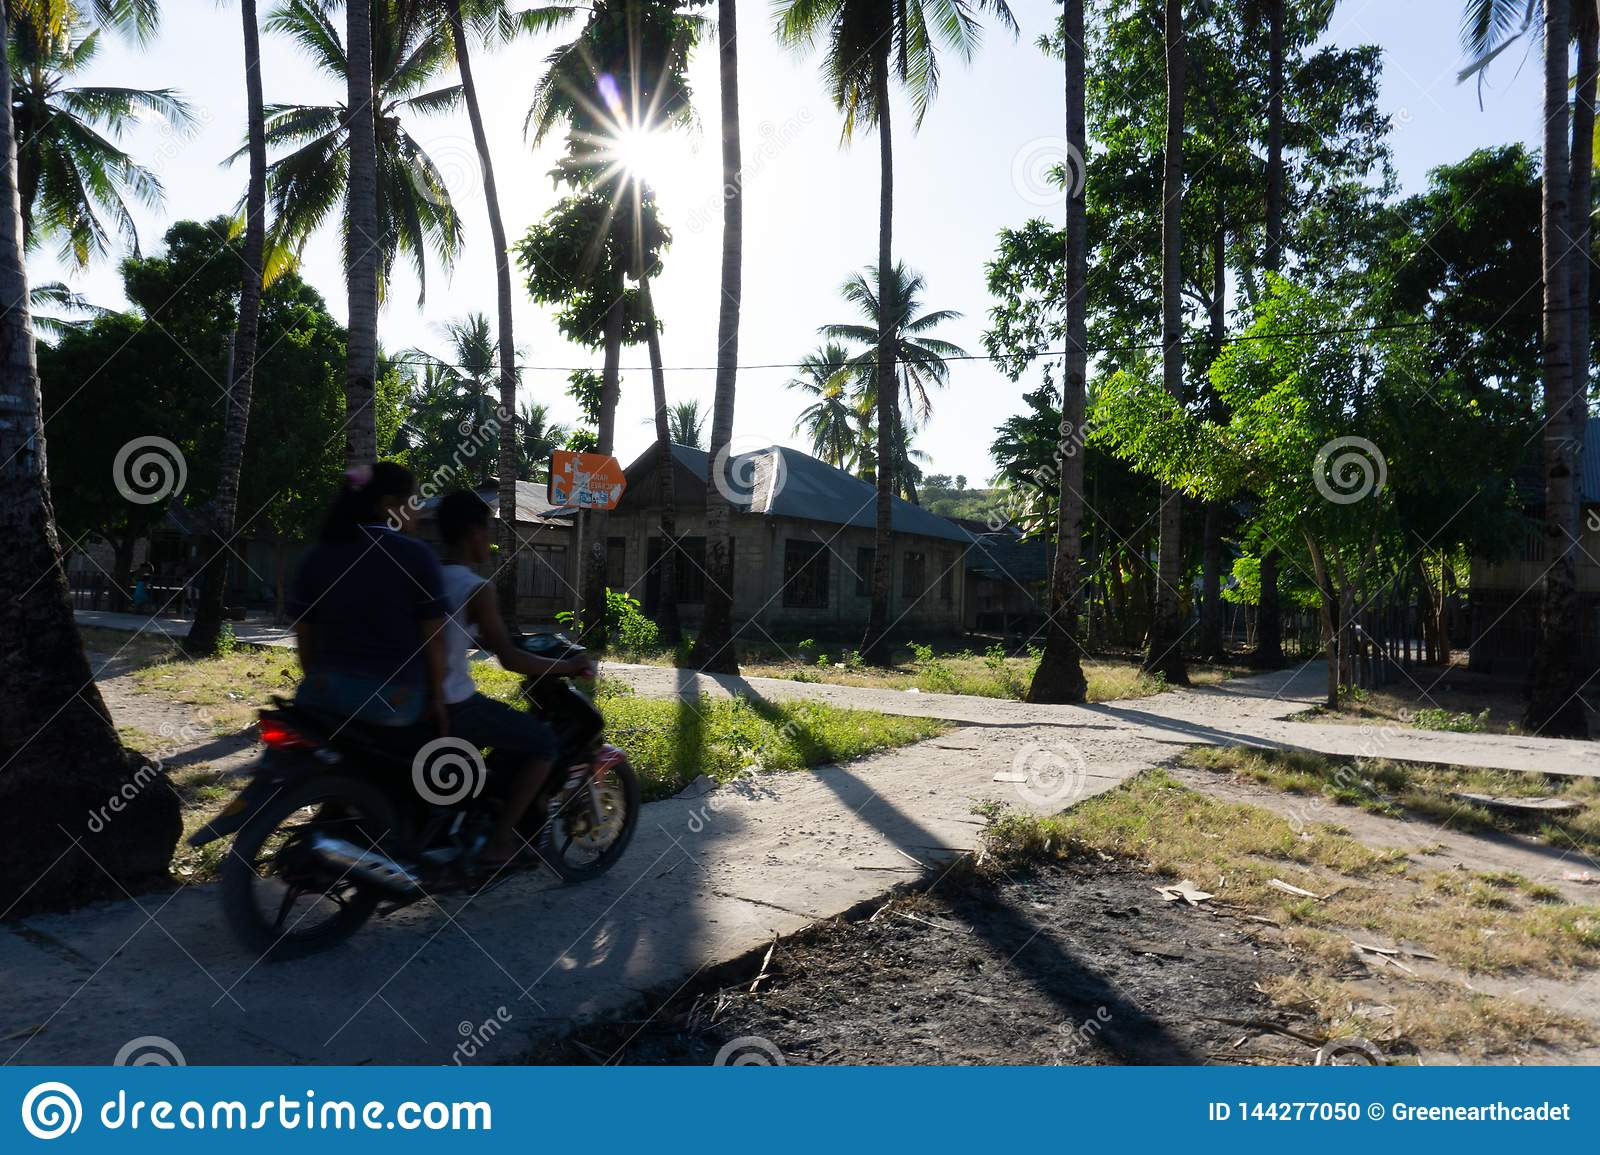 A Couple ride motor cycle on the village road